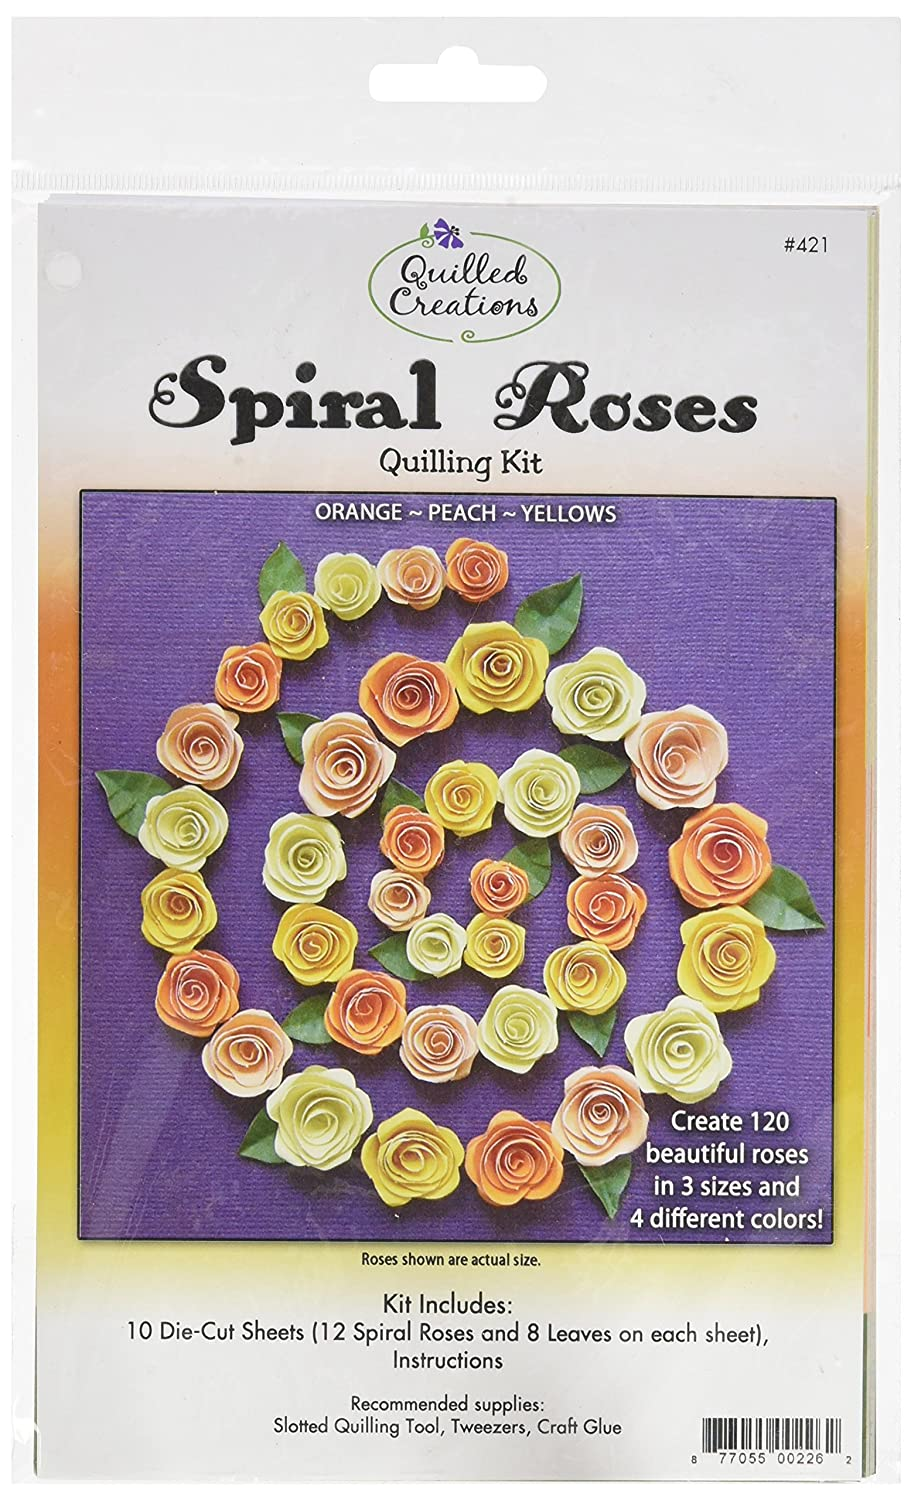 Quilled Creations QC421 Spiral Roses Quilling Kit, Orange/Peach/Yellow Notions - In Network